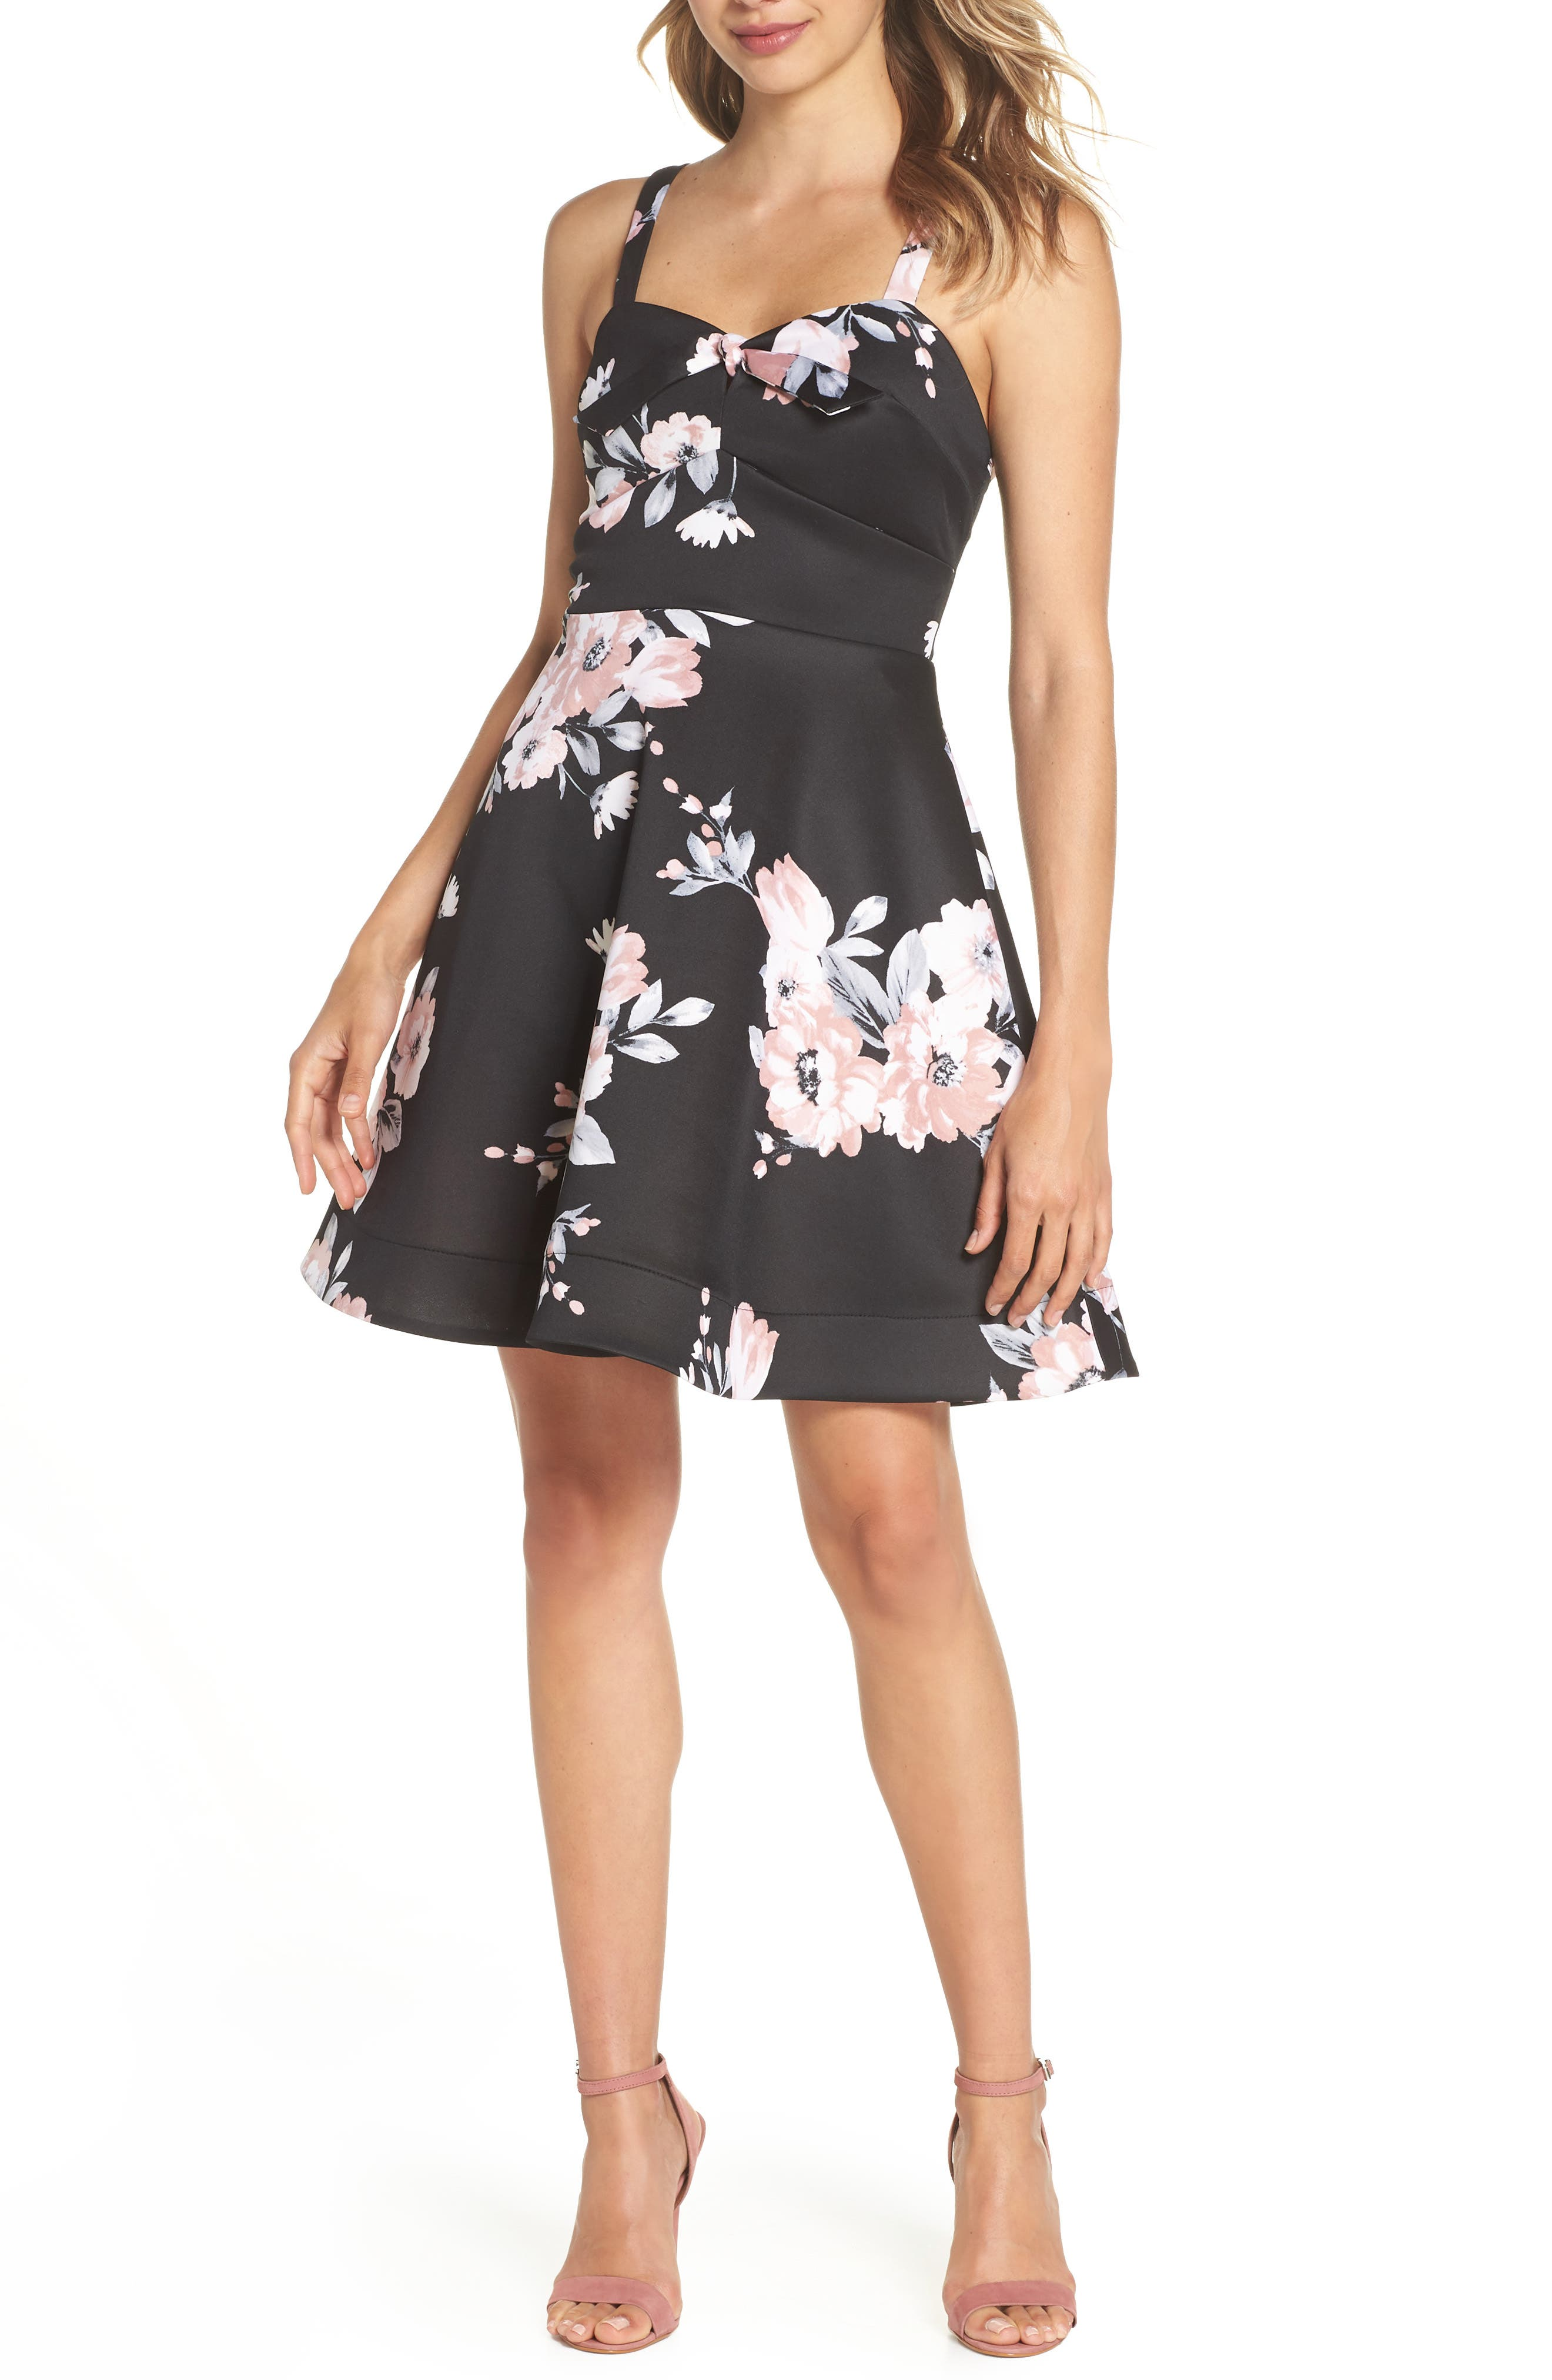 SEQUIN HEARTS Floral Print Fit & Flare Dress, Main, color, 002